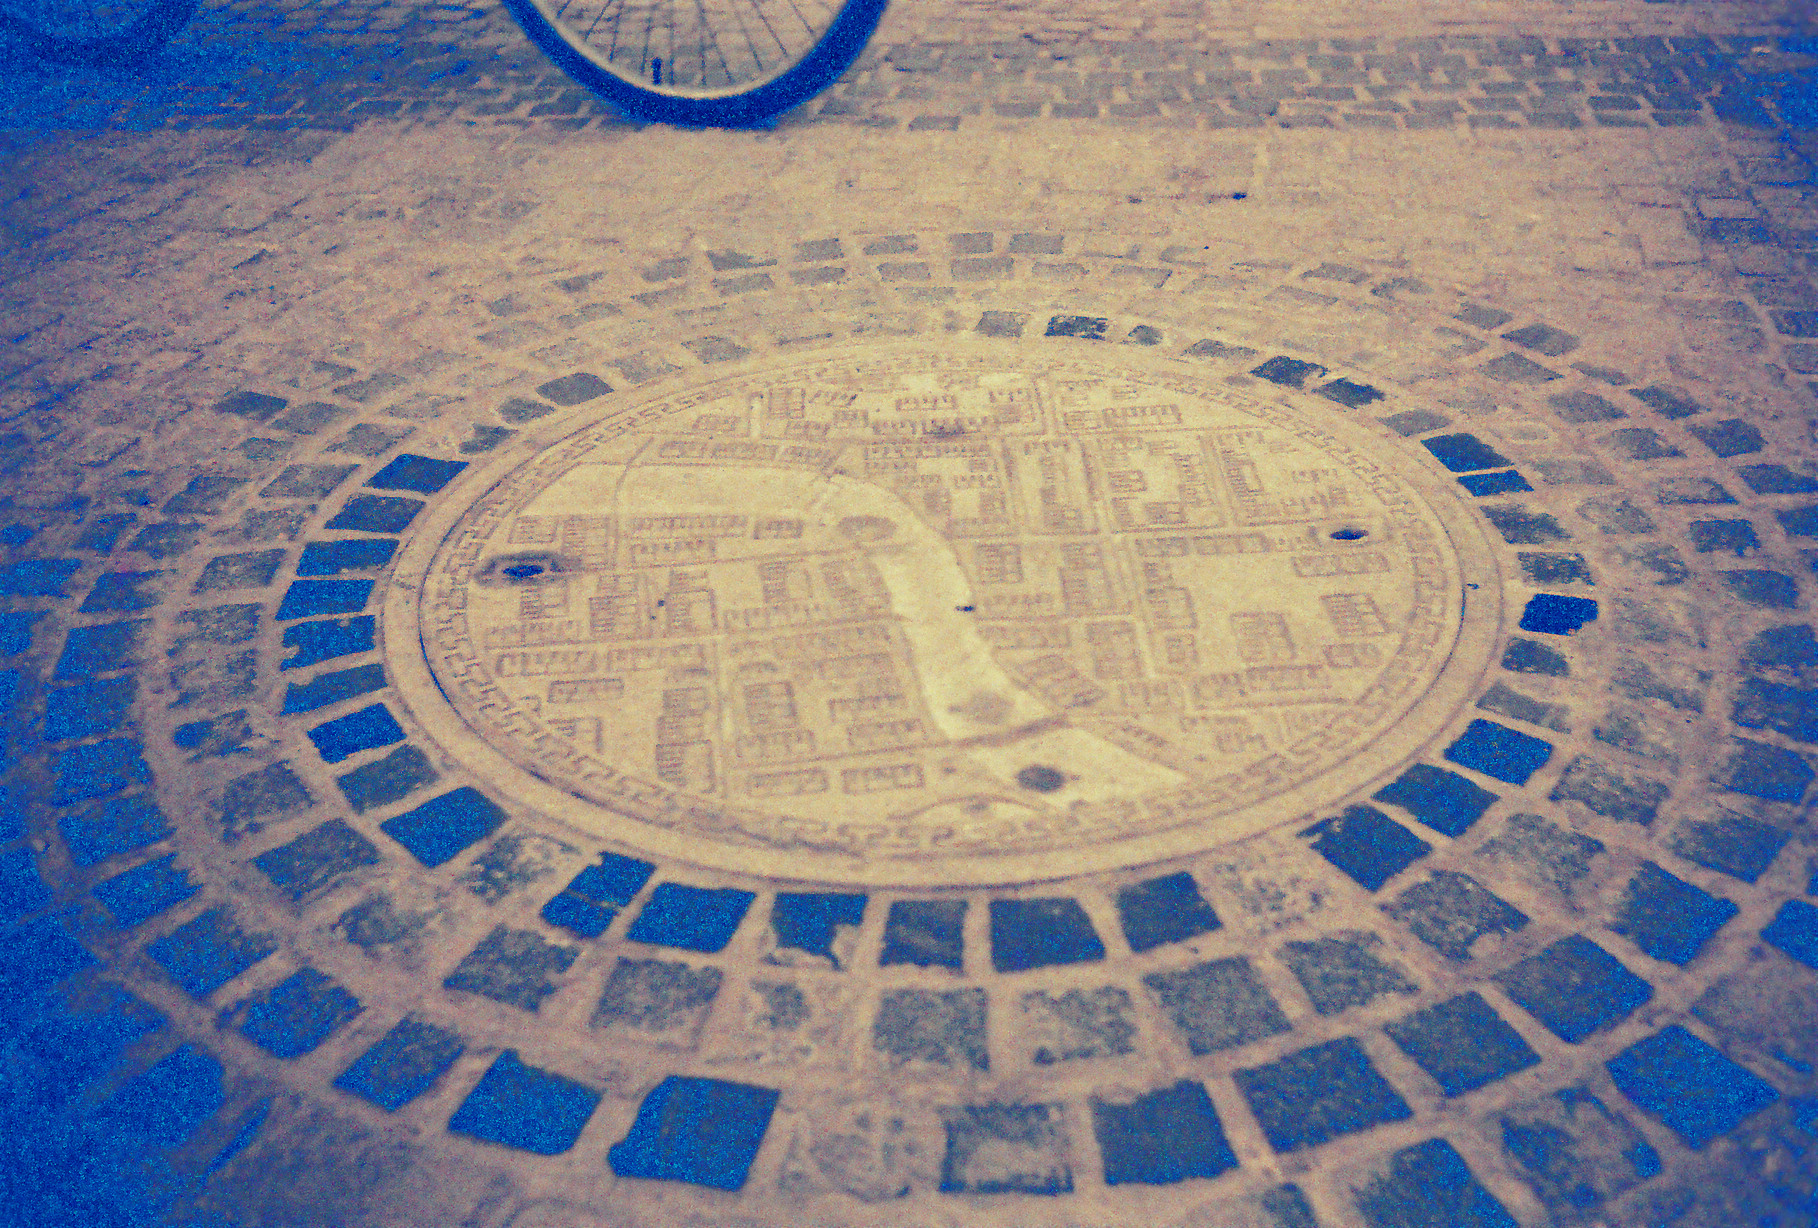 Beijing Deluges, Manholes And Urban Planning